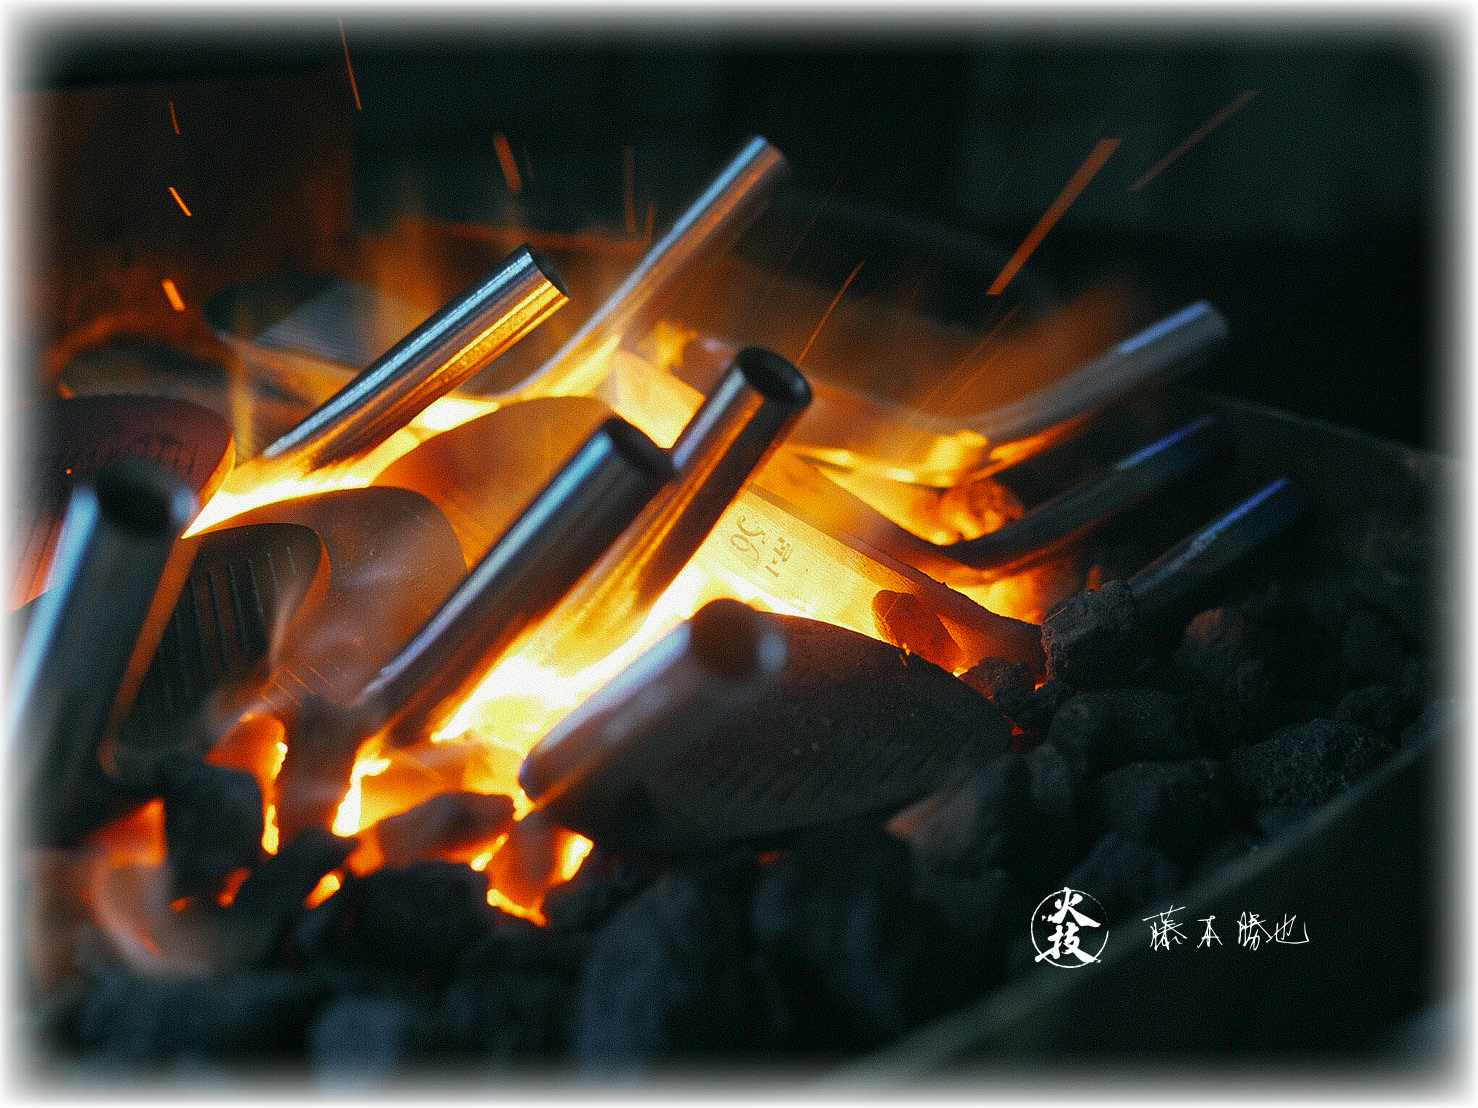 Blacksmith to a grind house. - Everything is up to the masters eyes and senses. Every day is different as is metal. Katsuya was trained from a young age by his grandfather who was a black smith by trade. Until this date, his spirit and passion still runs deep inside the family.温度や鉄の状態を測る計測機器などはありません。毎日が違うように、鉄もそれぞれ少しずつ違います。鍛治職人の父より教え込まれた鉄を見る目は、今も藤本家に伝わる大切な技術です。